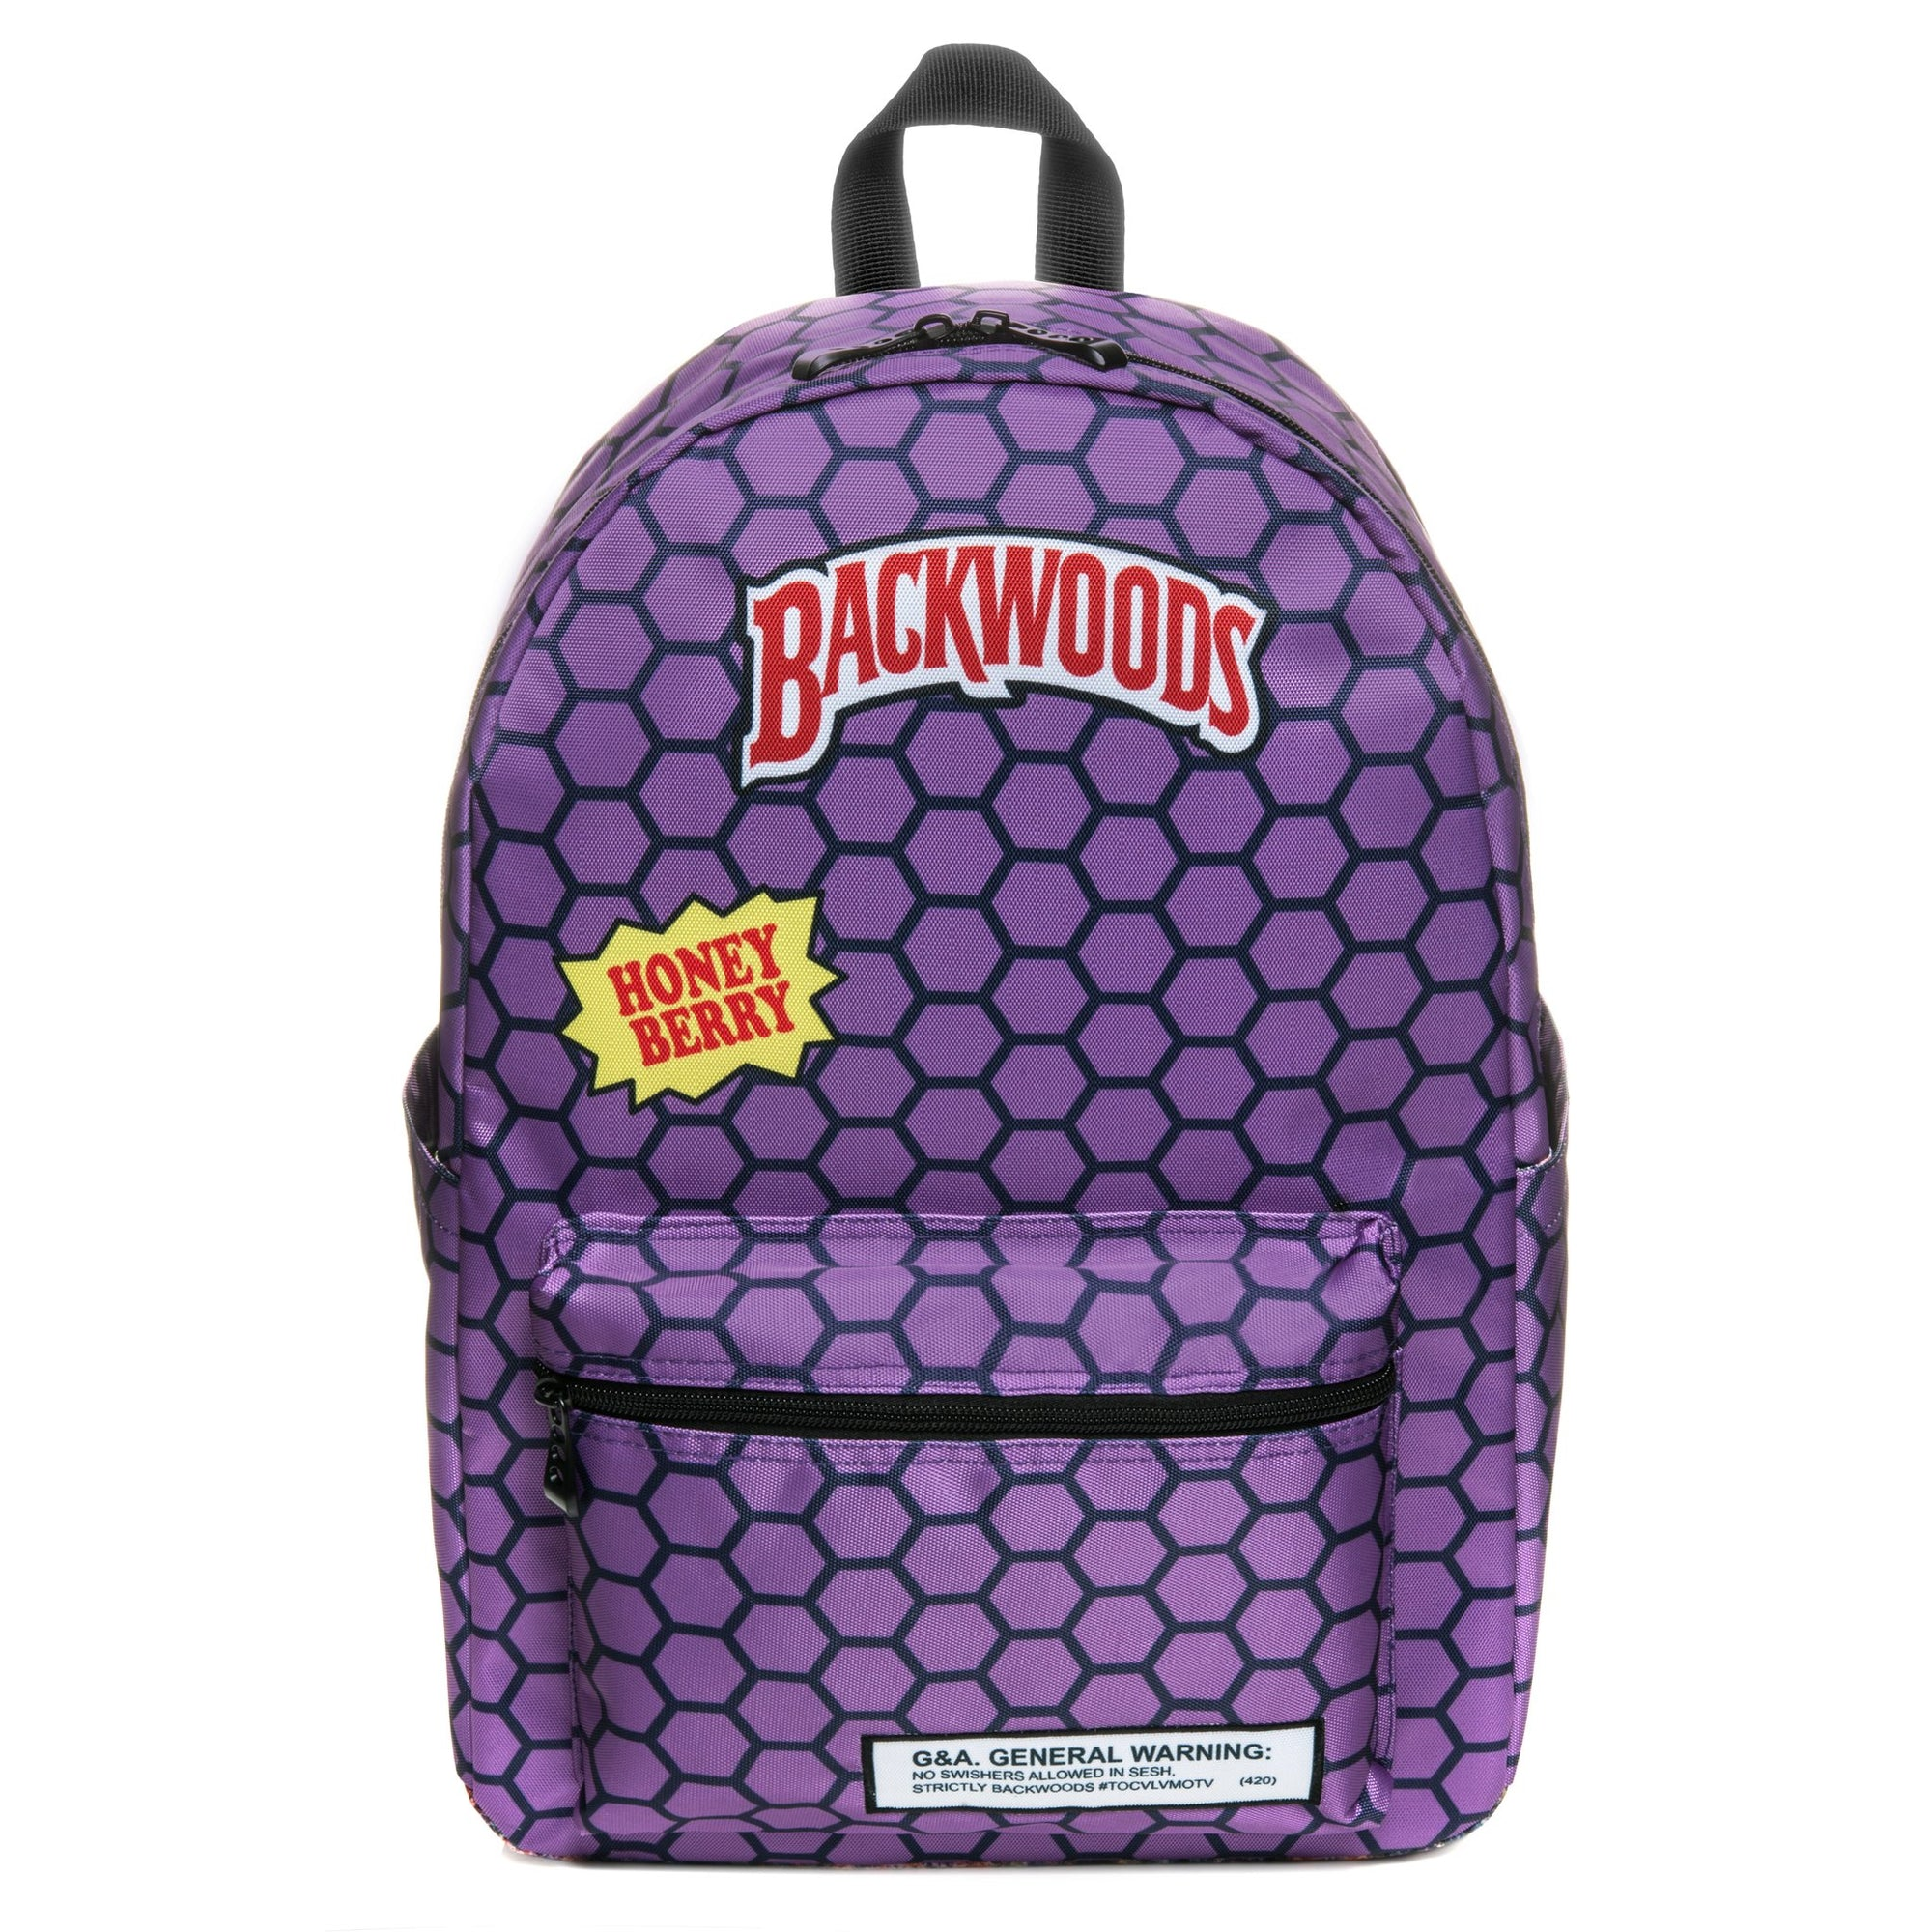 Honey Berry Backwoods Backpack